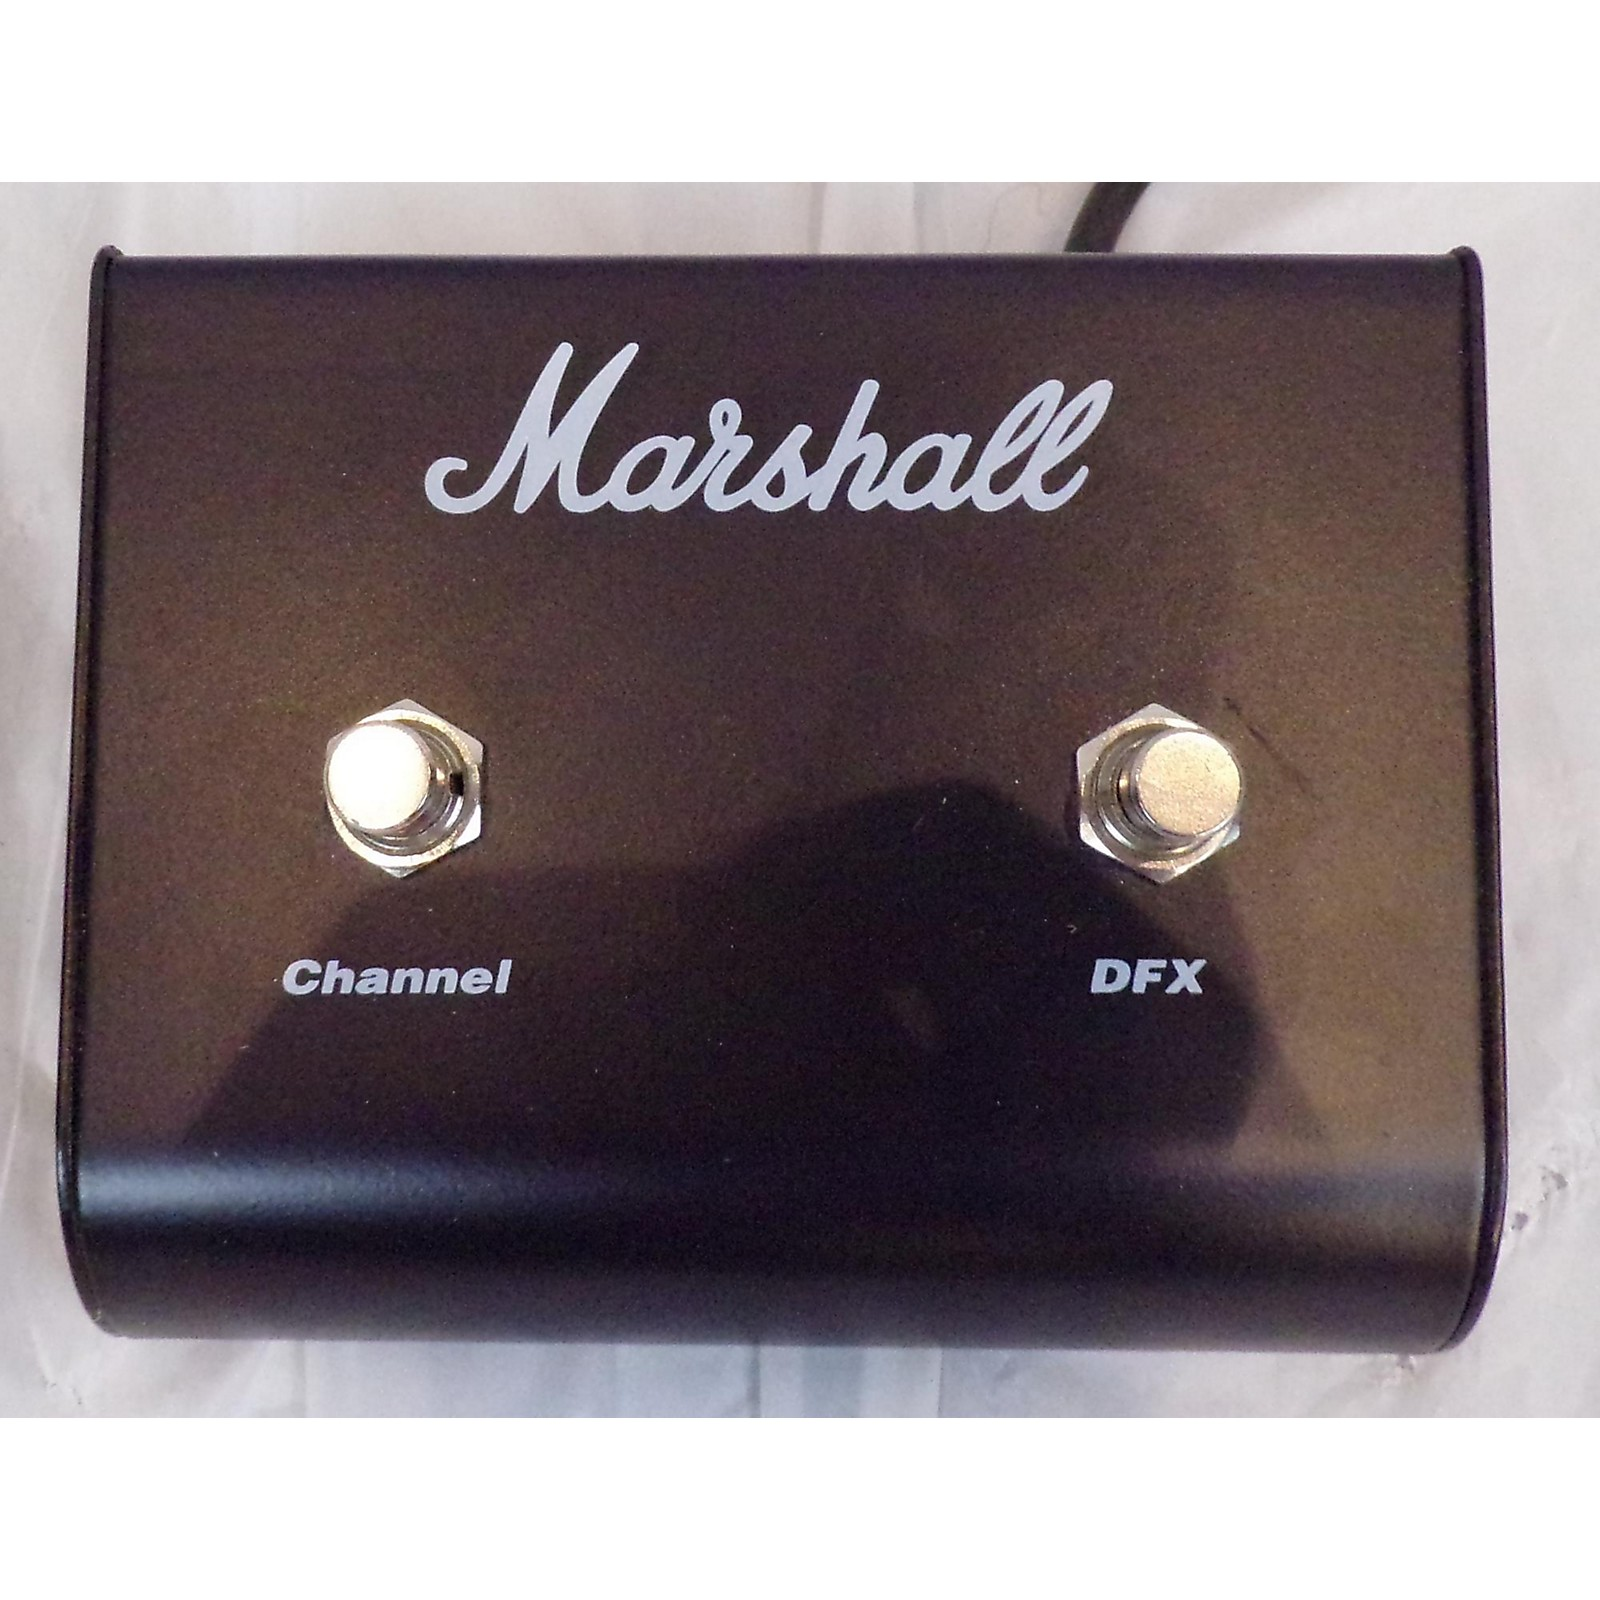 Marshall 2 Button DFX Footswitch Footswitch